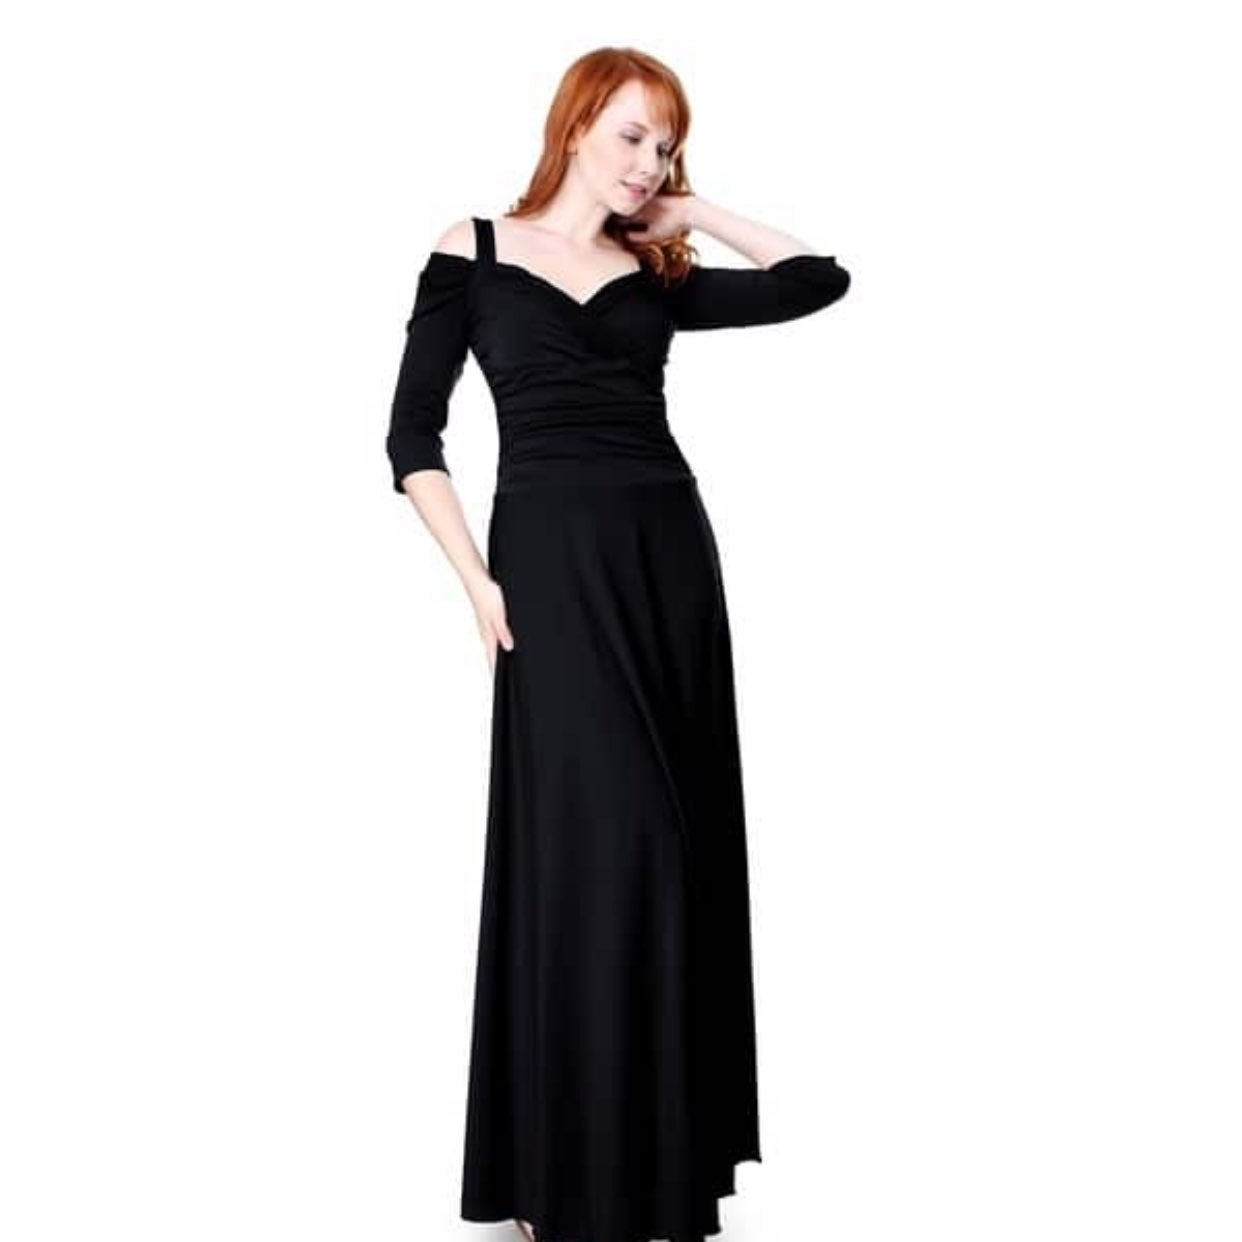 Evanese Formal Black Evening Gown L NEW